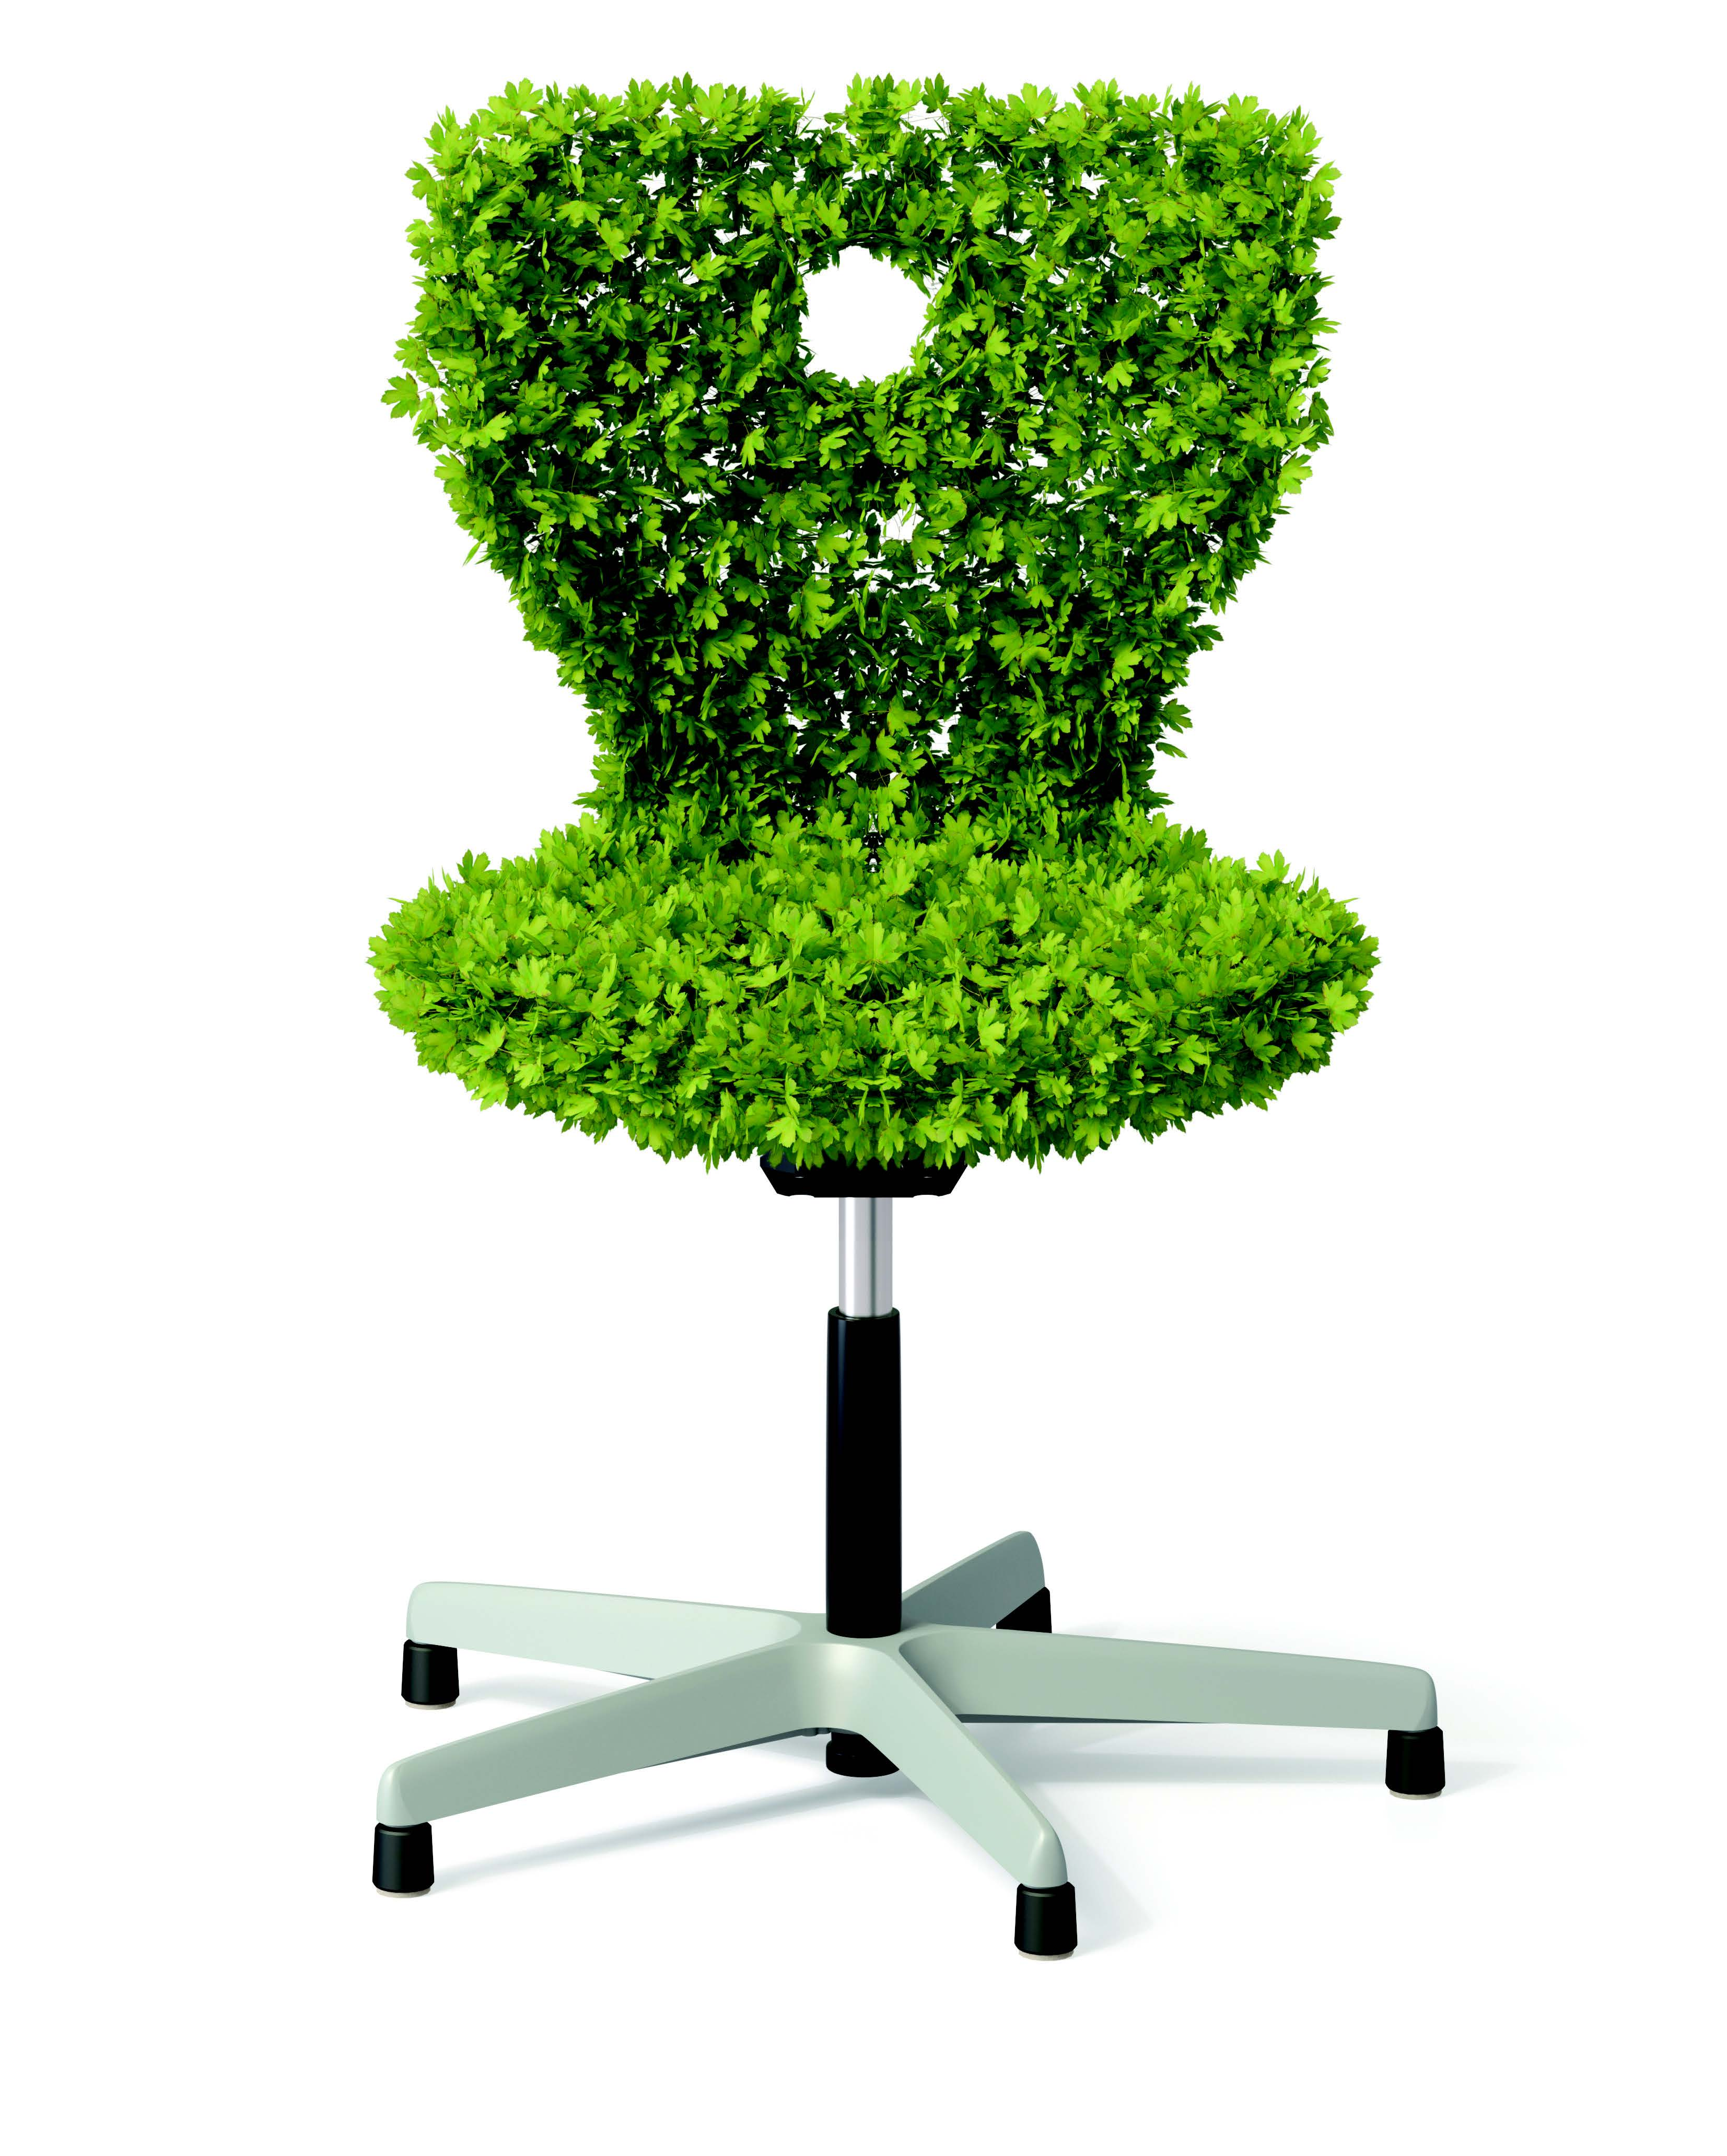 eco-friendly desk chair made out of leaves